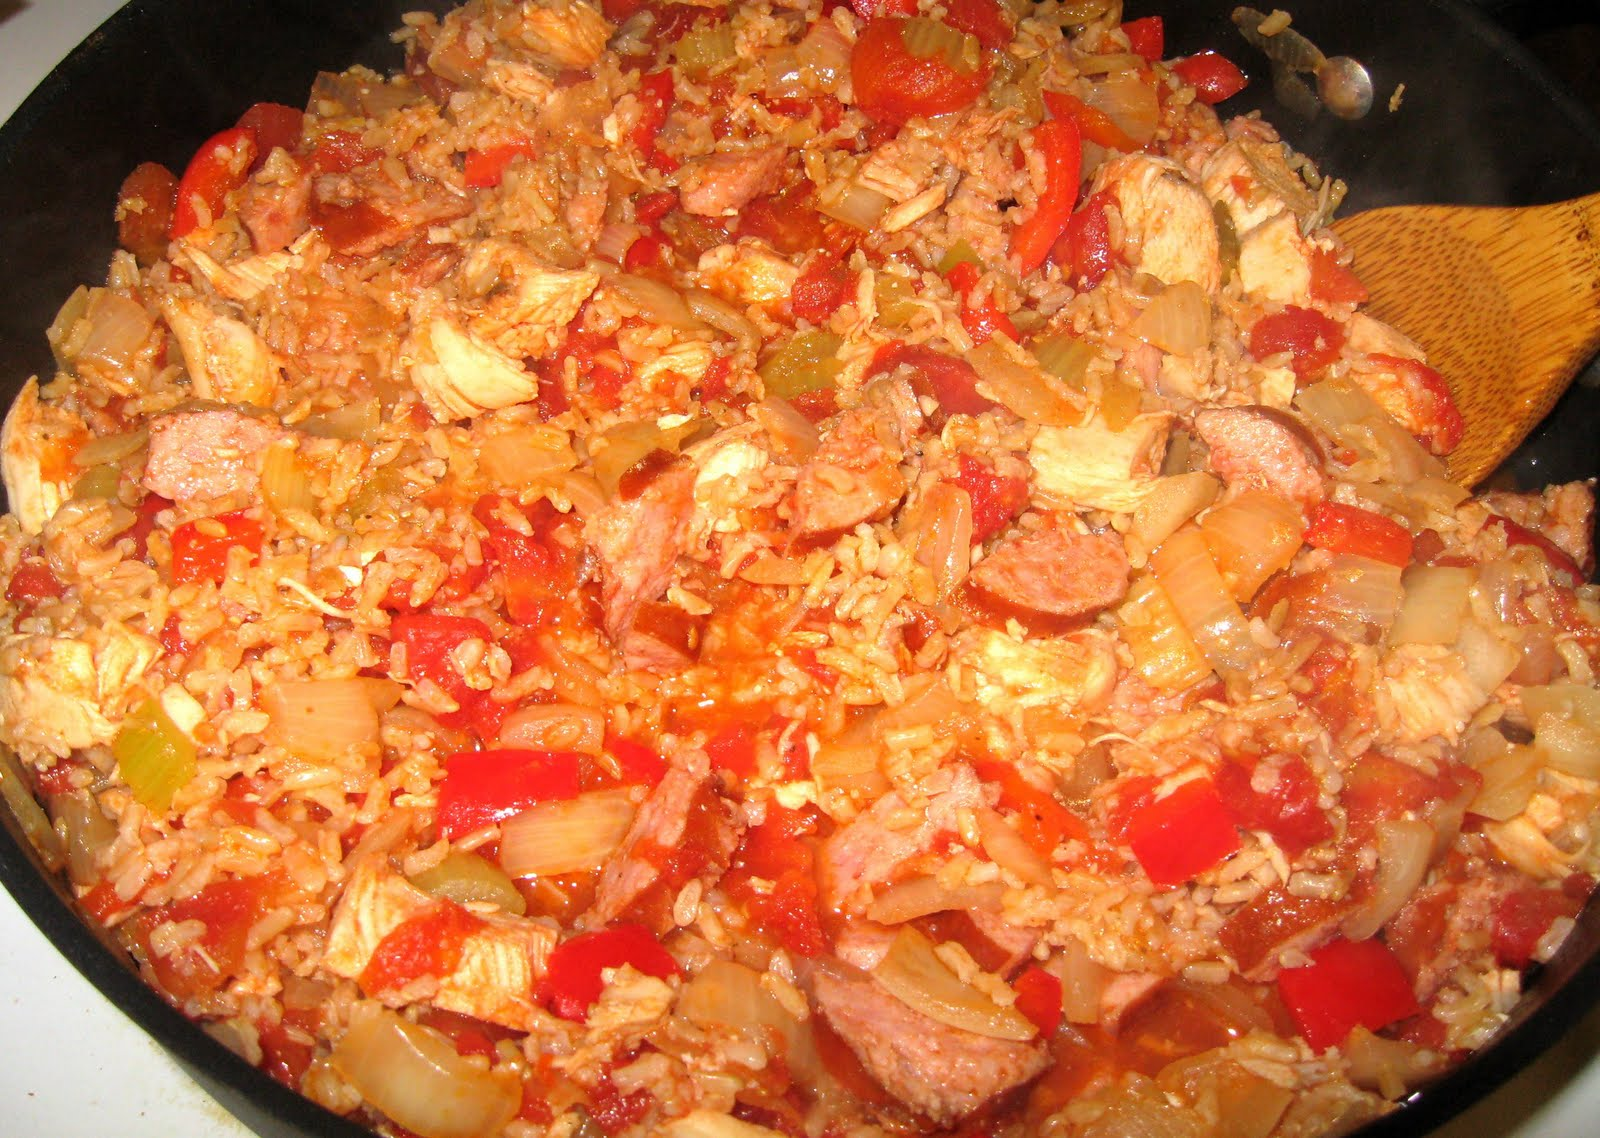 ... Dinner... Healthy & Low Calorie: Jambalaya Chicken & Sausage Cass...